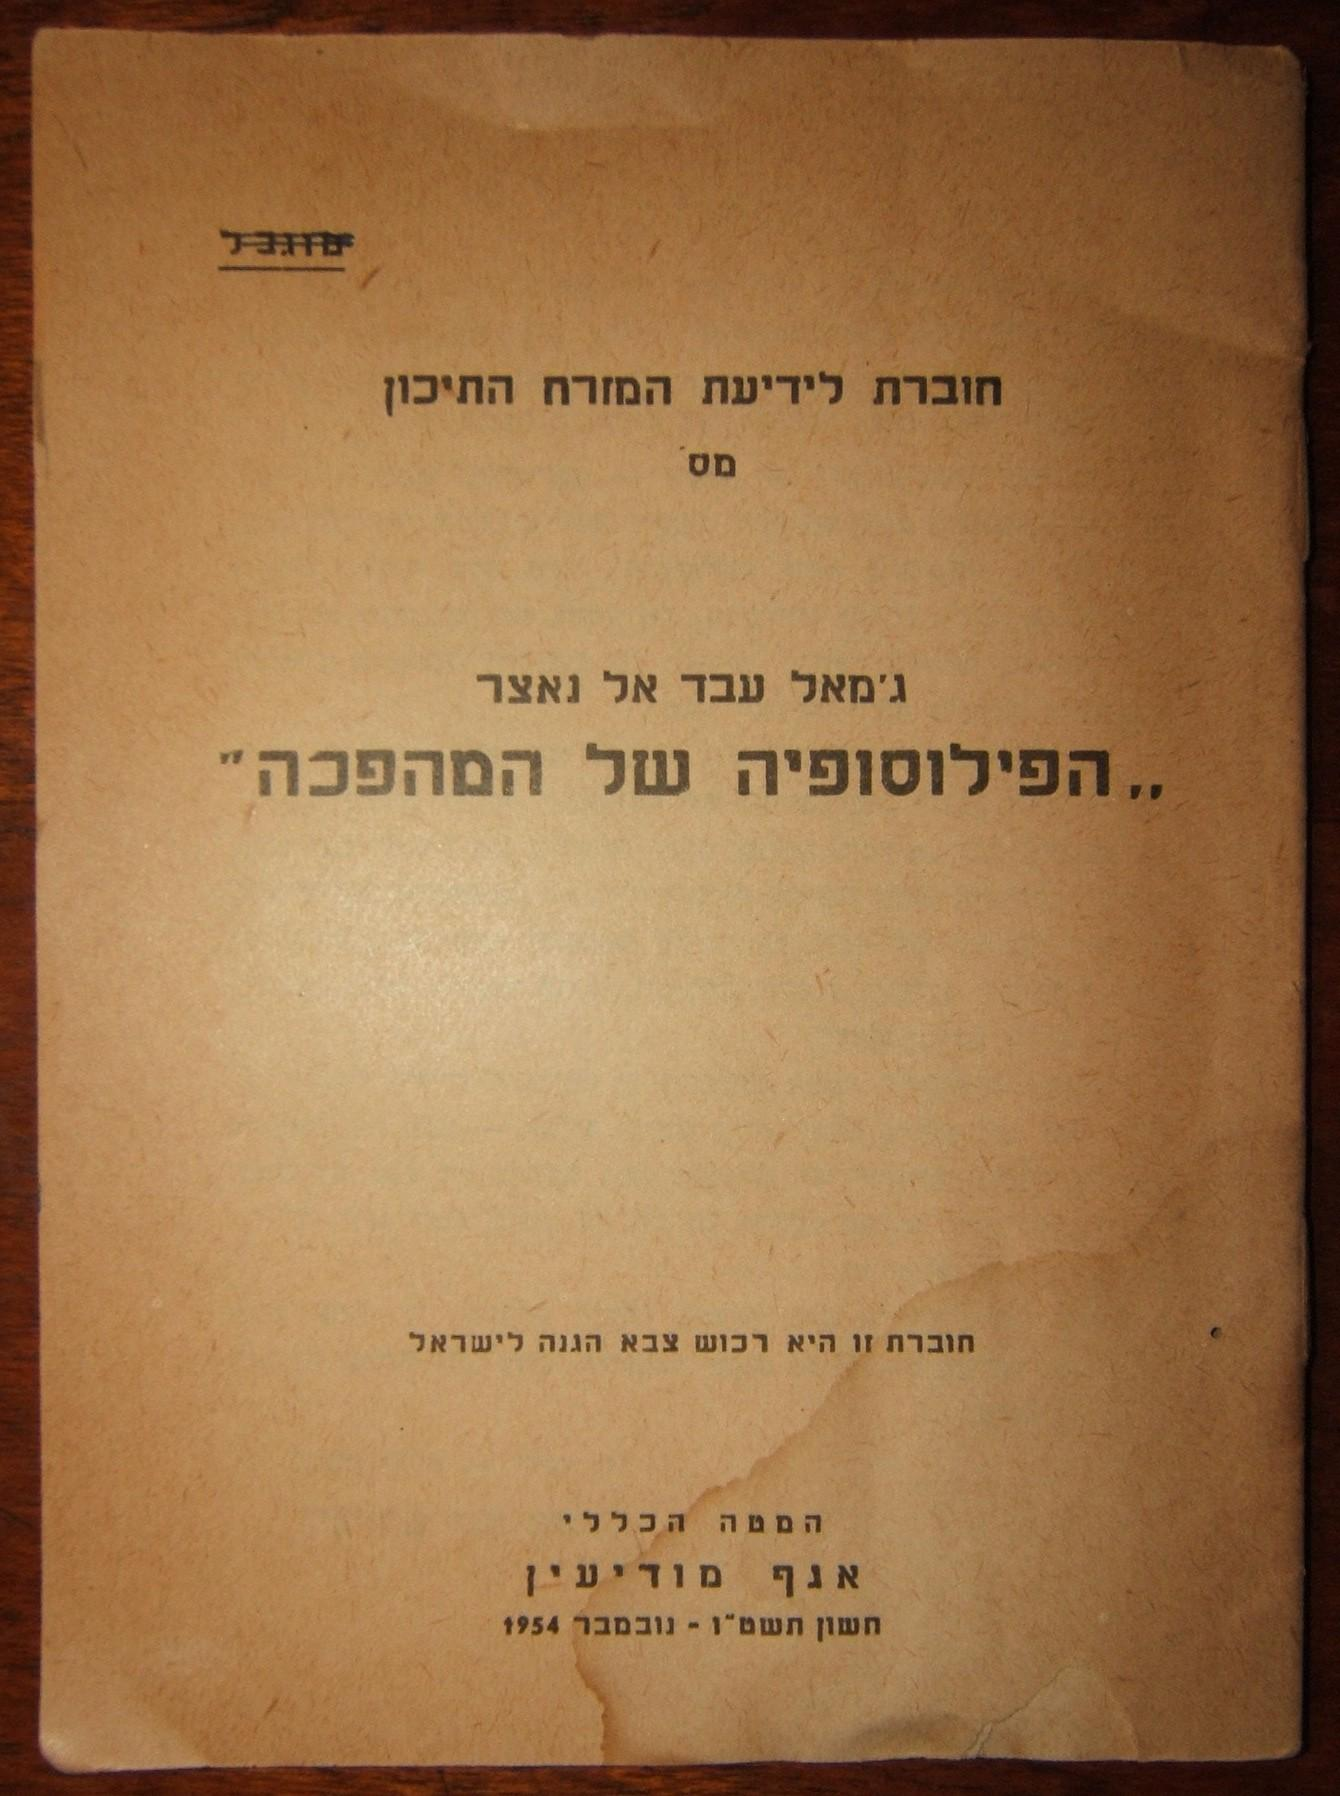 IDF intelligence corps translation of Nasser's 'Philosophy of Revolution', 1954